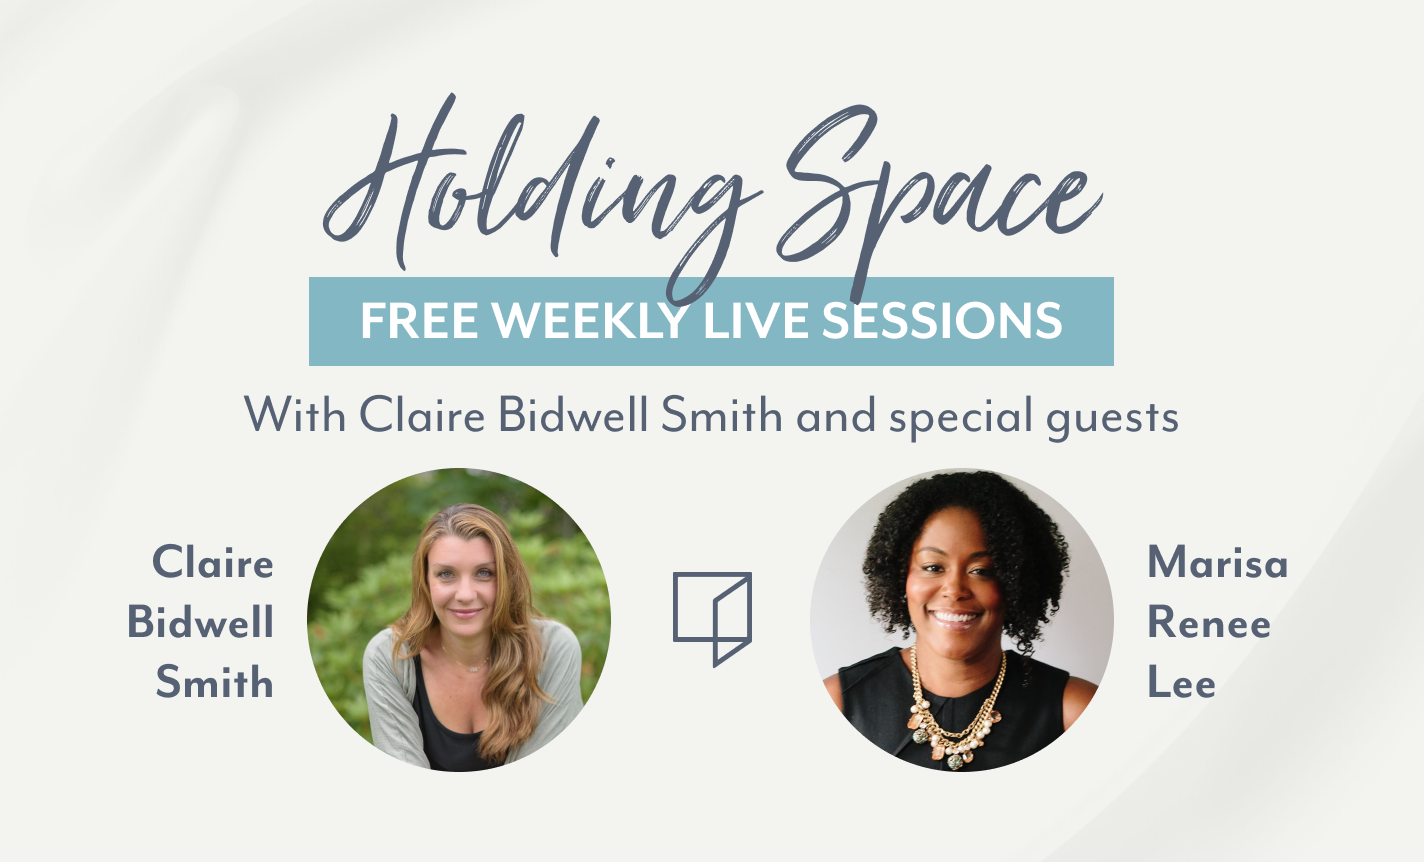 Holding Space: Claire Bidwell Smith & Marisa Renee Lee